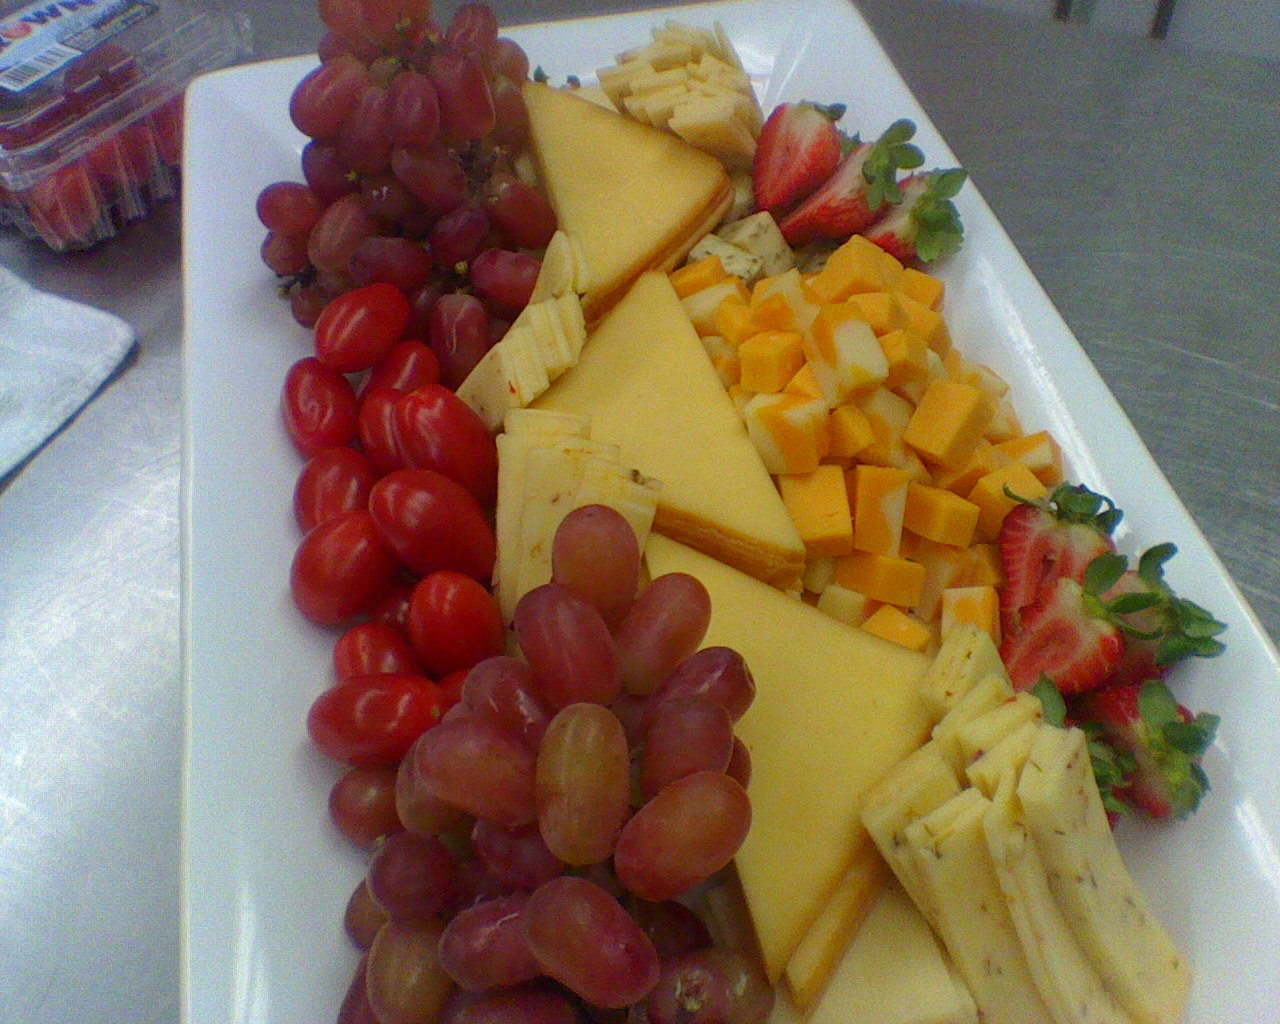 Cheese Plate I Put Together 2